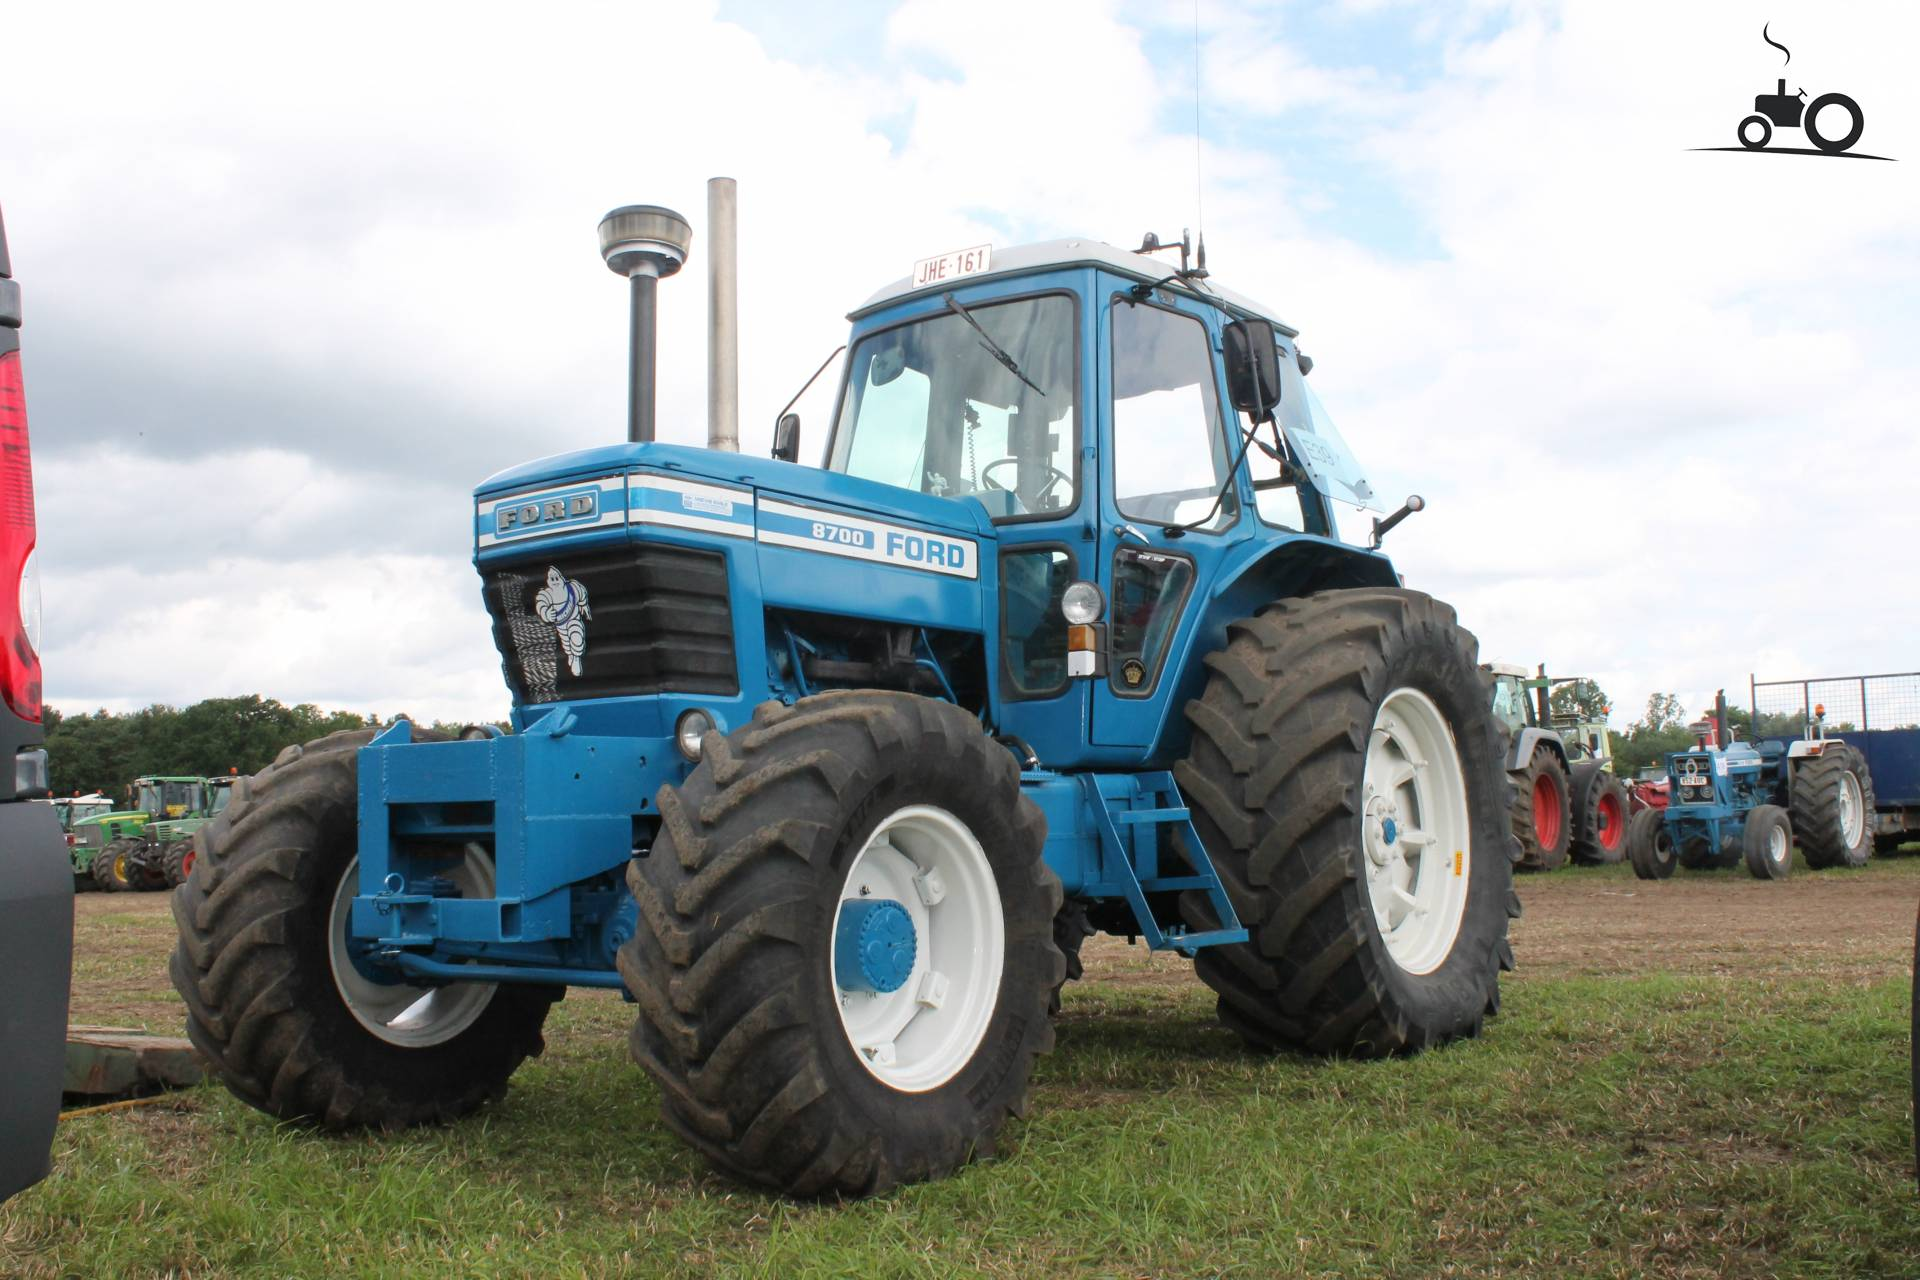 Ford 8700 Tractor : Ford industrial